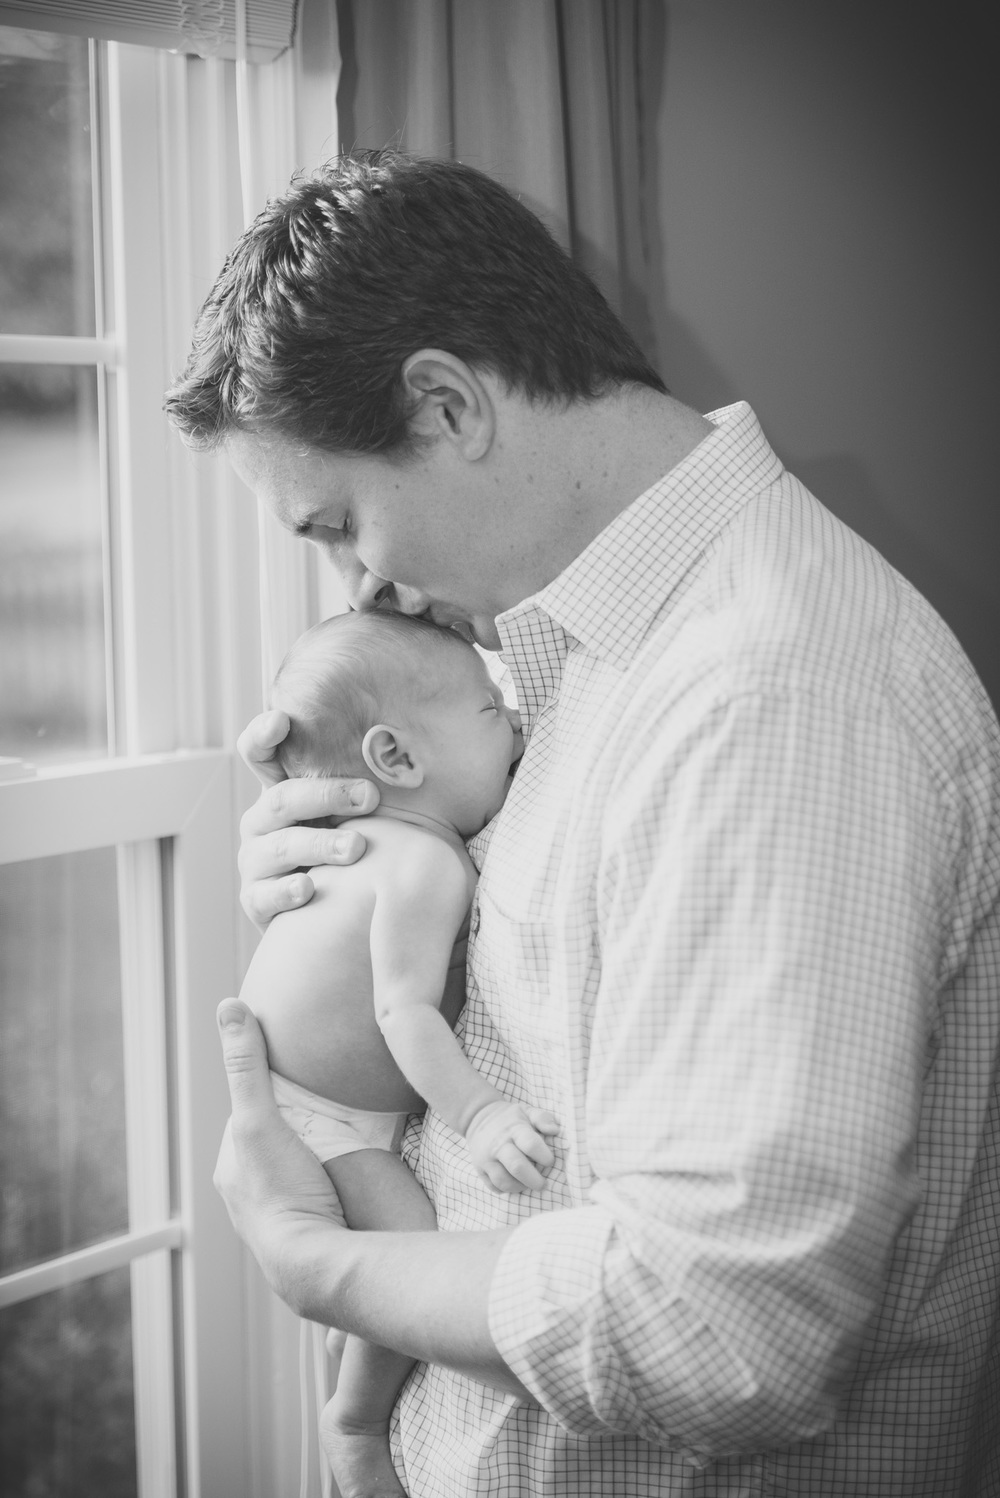 lifestyle_session_newborn_family_home_lynhcburg_va_photographers012.jpg